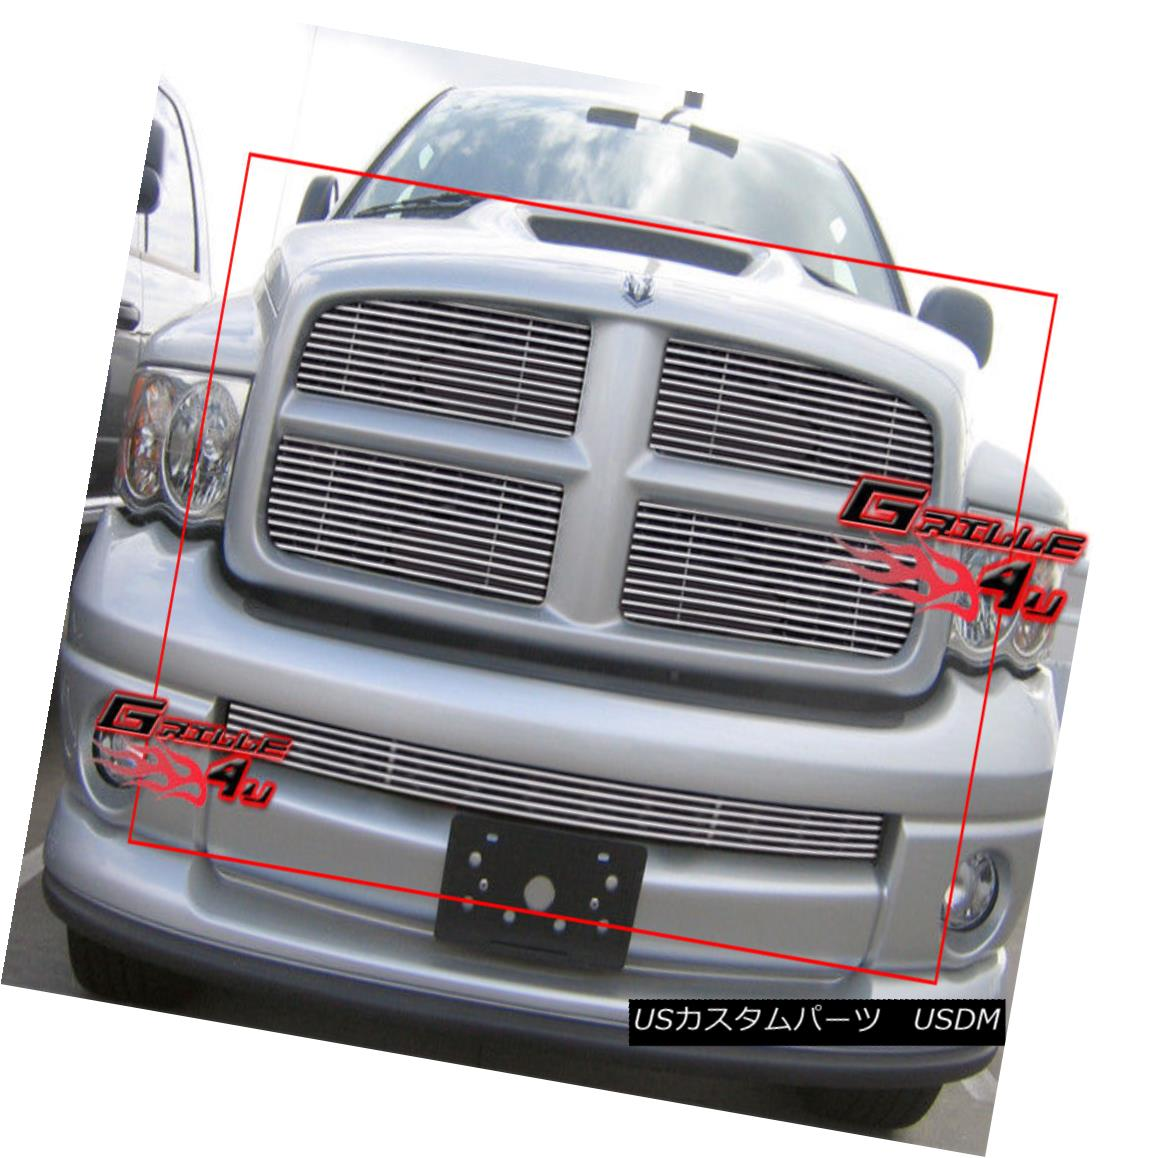 グリル For 02-05 Dodge Ram Sport Billet Grille Combo Insert 02-05 Dodge Ram Sportビレットグリルコンボインサート